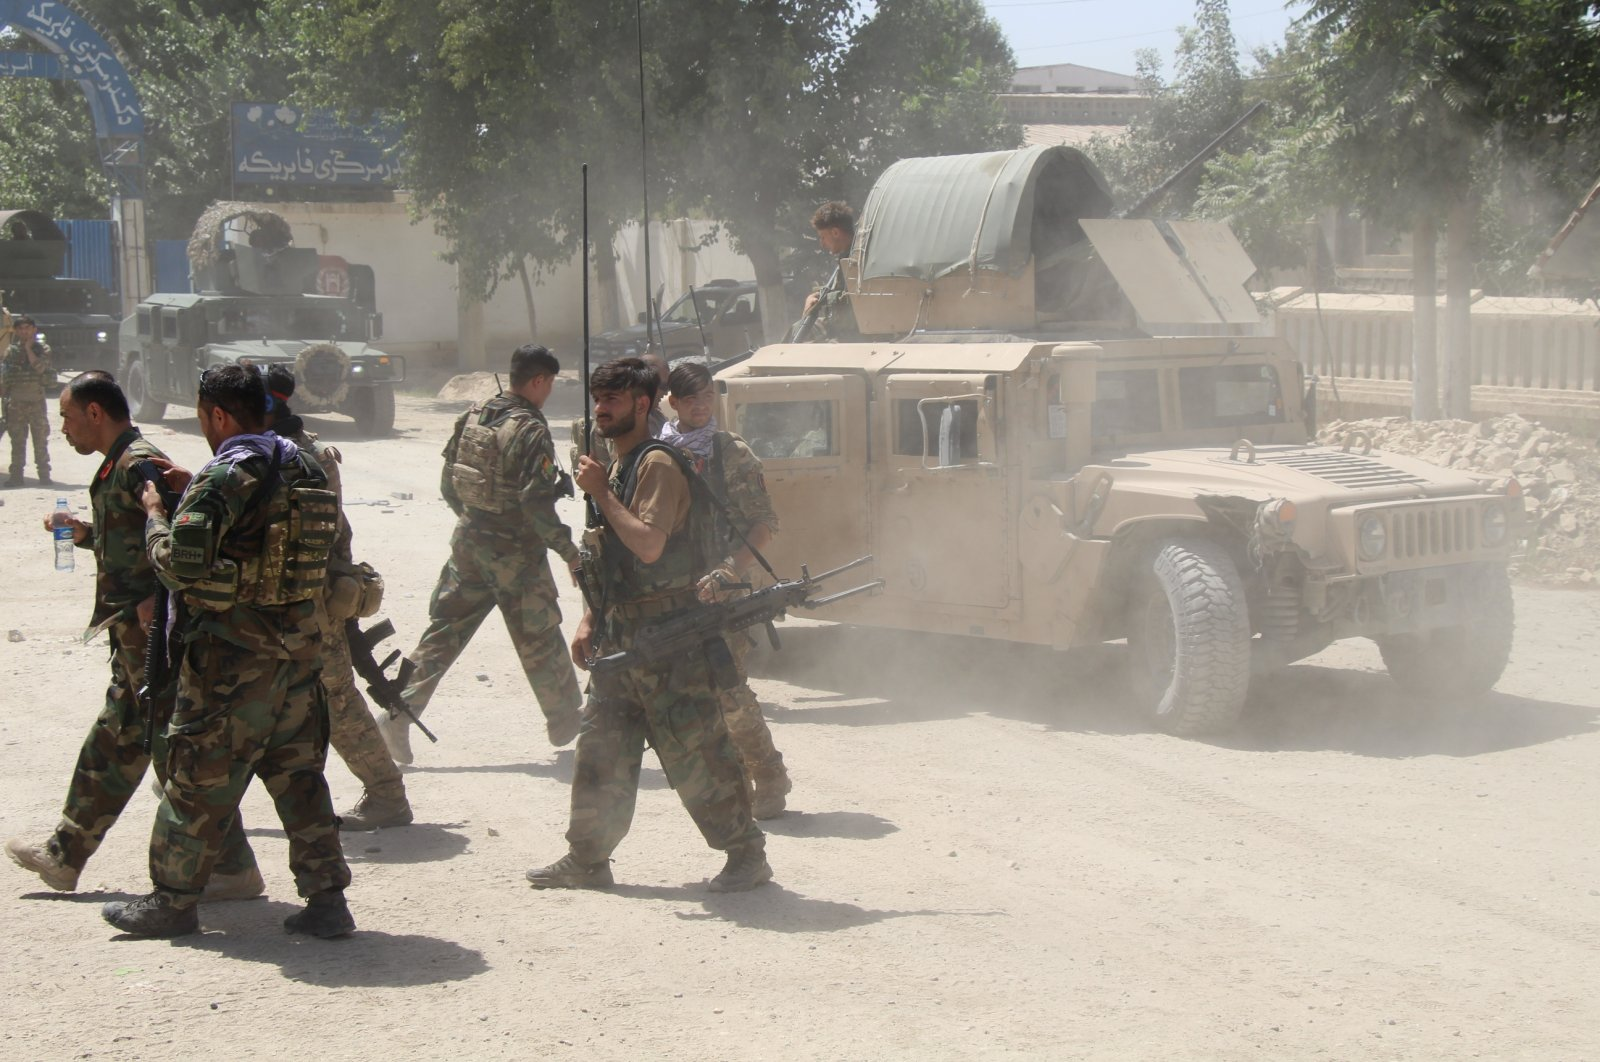 Afghan commando forces move about at the site of a battlefield where they clashed with Taliban insurgents, in Kunduz province, Afghanistan, June 22, 2021. (Reuters Photo)